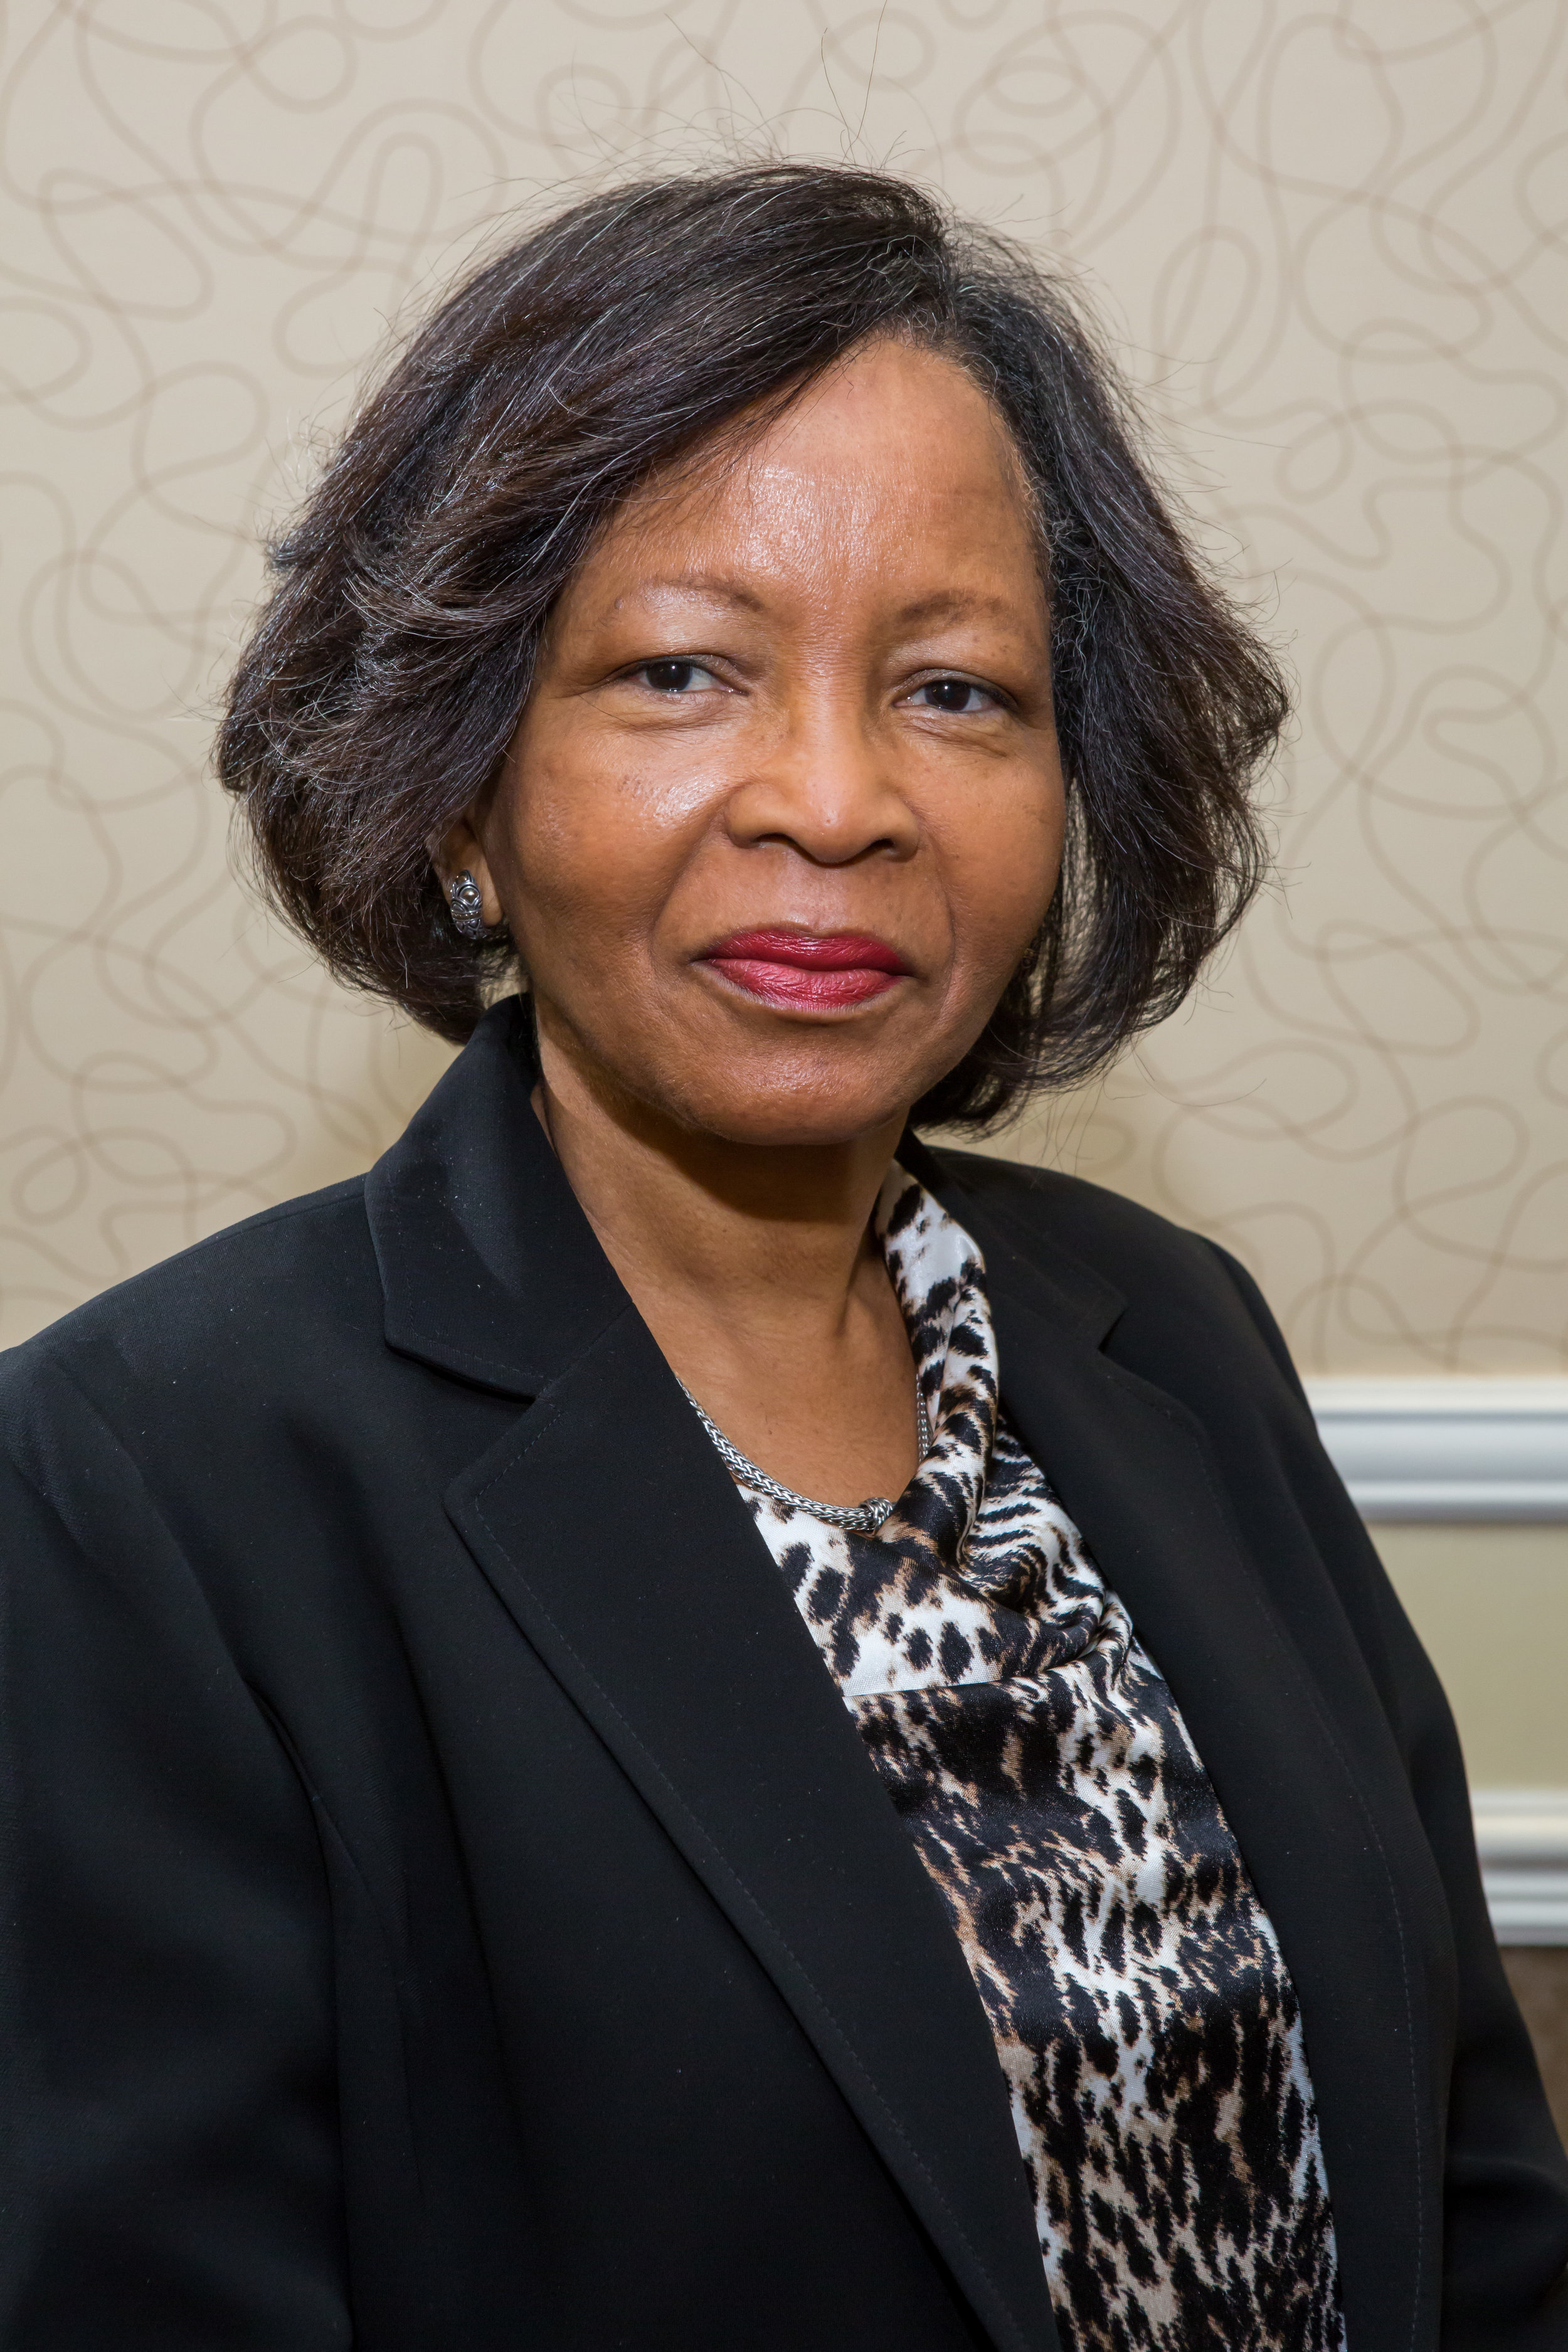 Valoris Smith <br >Lecturer<br >University of Technology <br >(Jamaica)